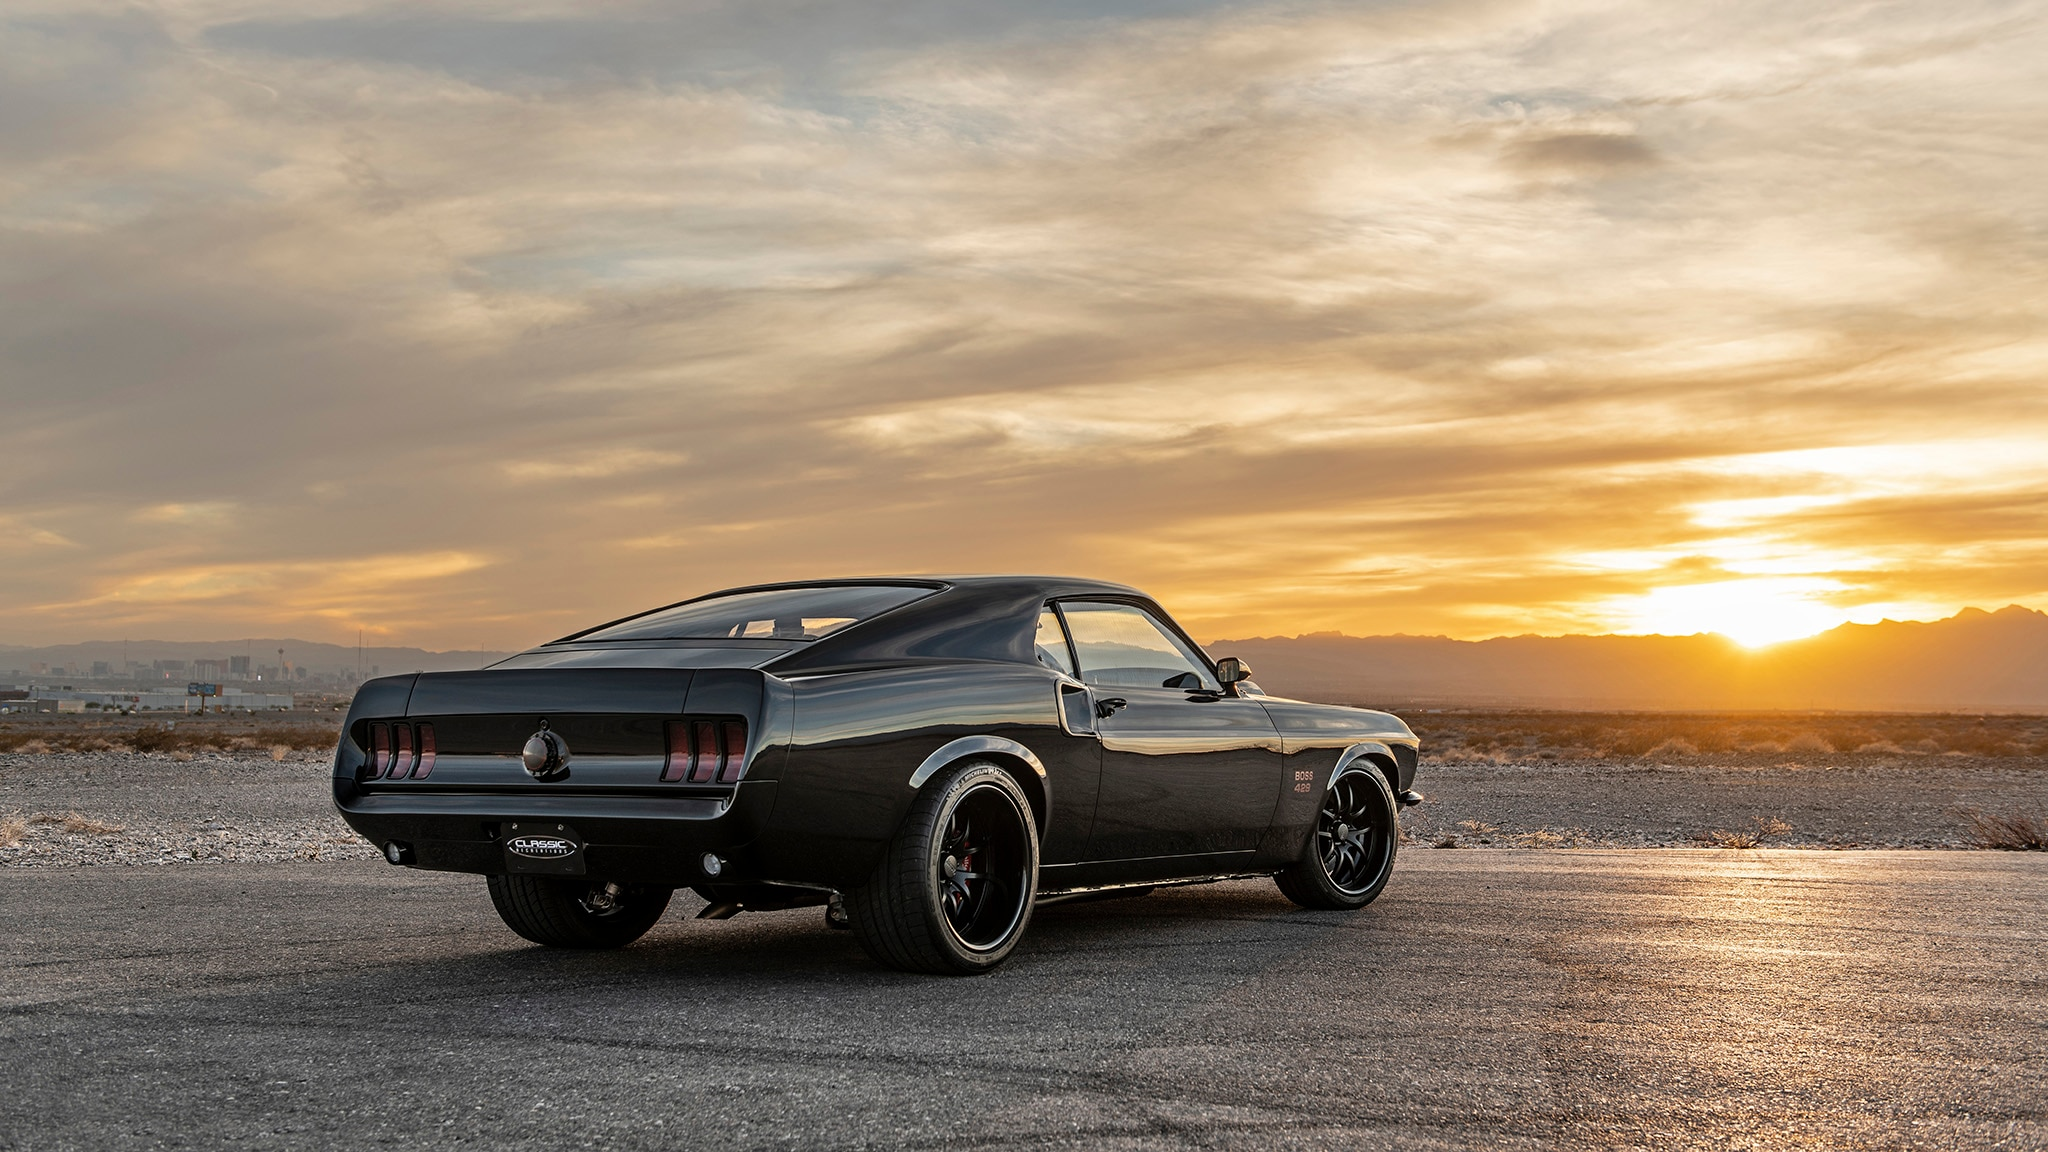 08 Classic Recreations 1969 Boss 429 Mustang